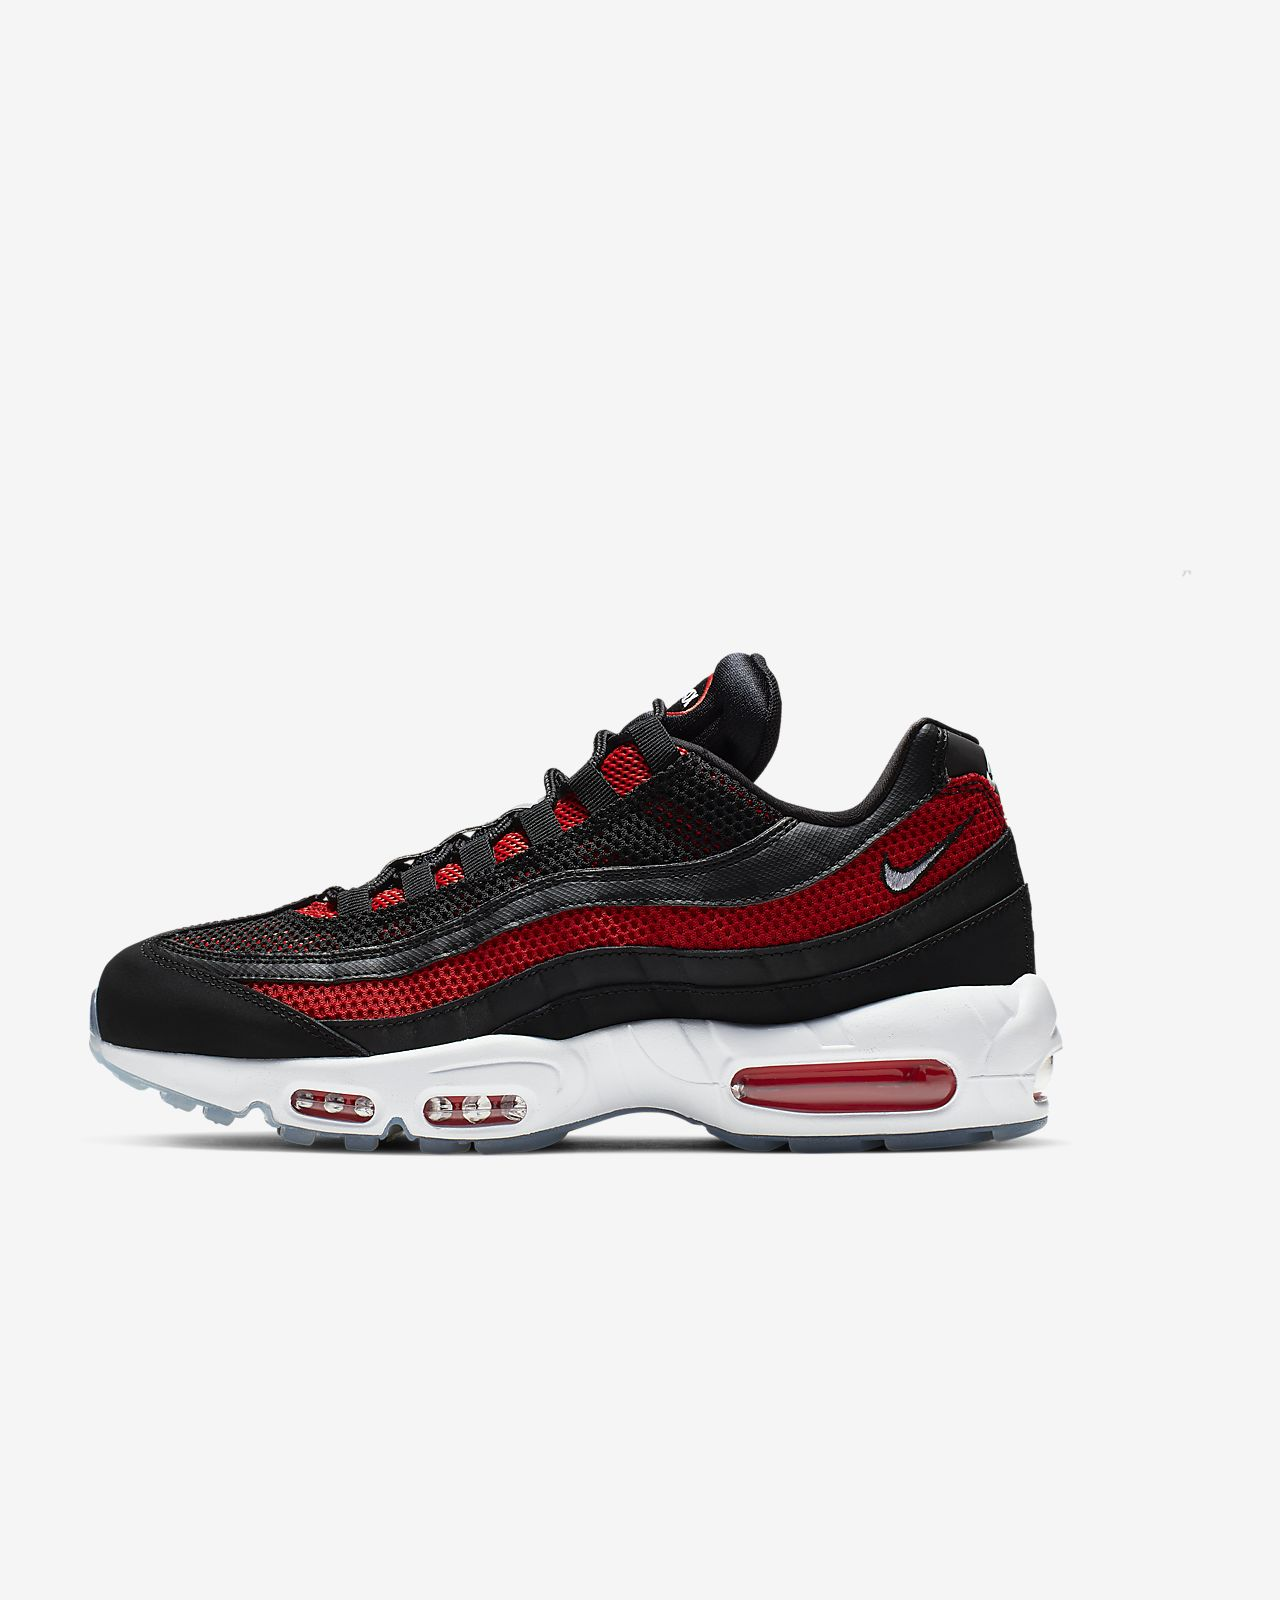 online retailer 02461 467c4 ... Nike Air Max 95 Essential Men s Shoe